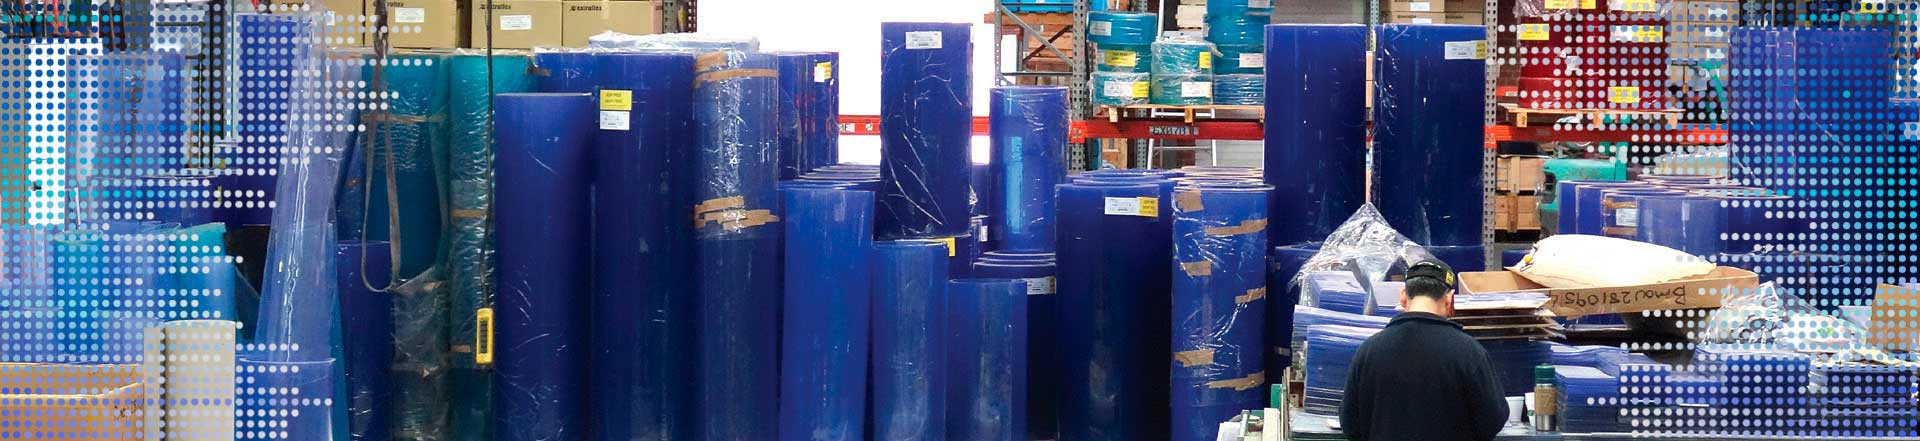 large pvc rolls in warehouse